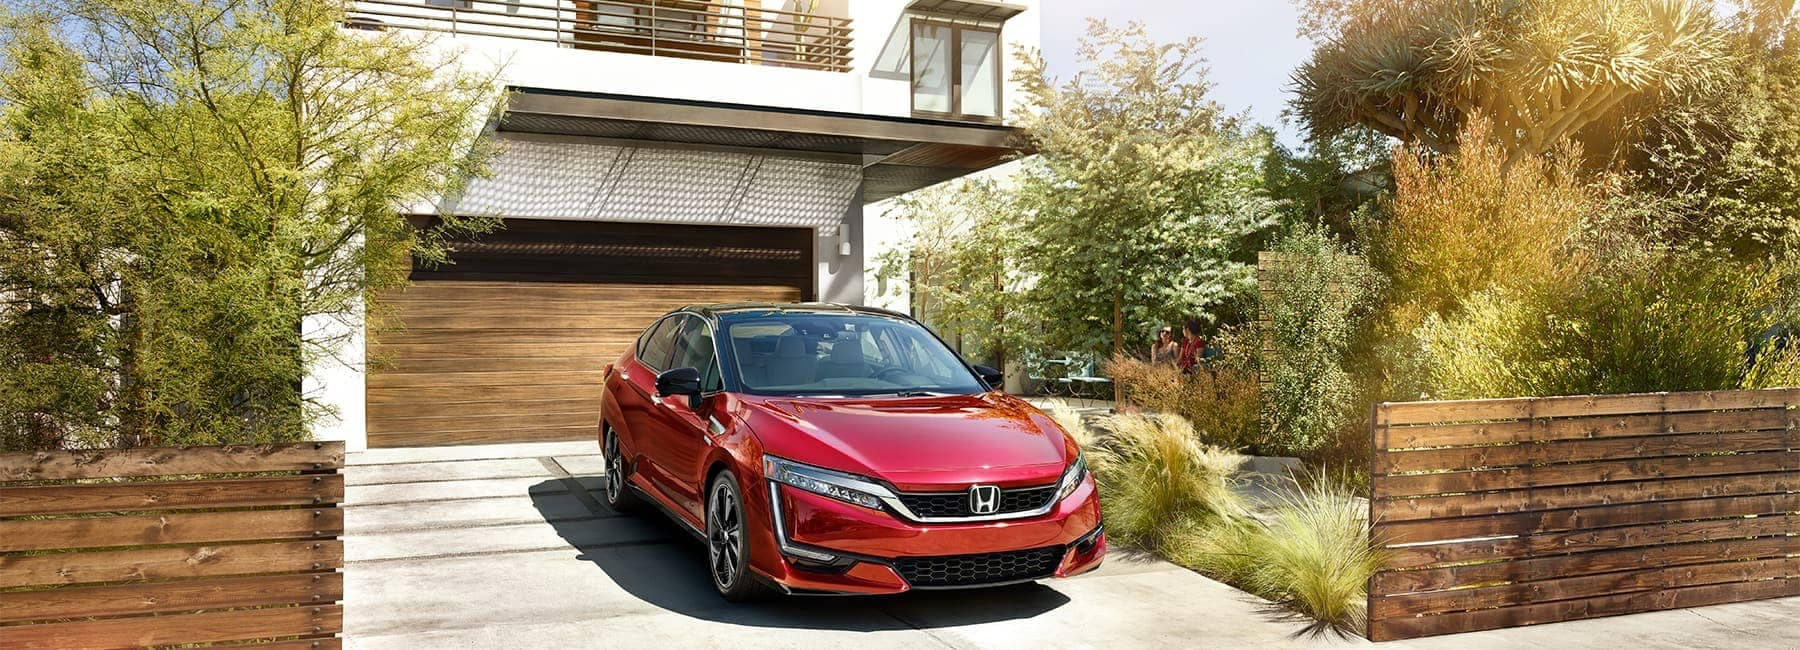 2020 Red Honda Clarity Parked in a very nice Garage